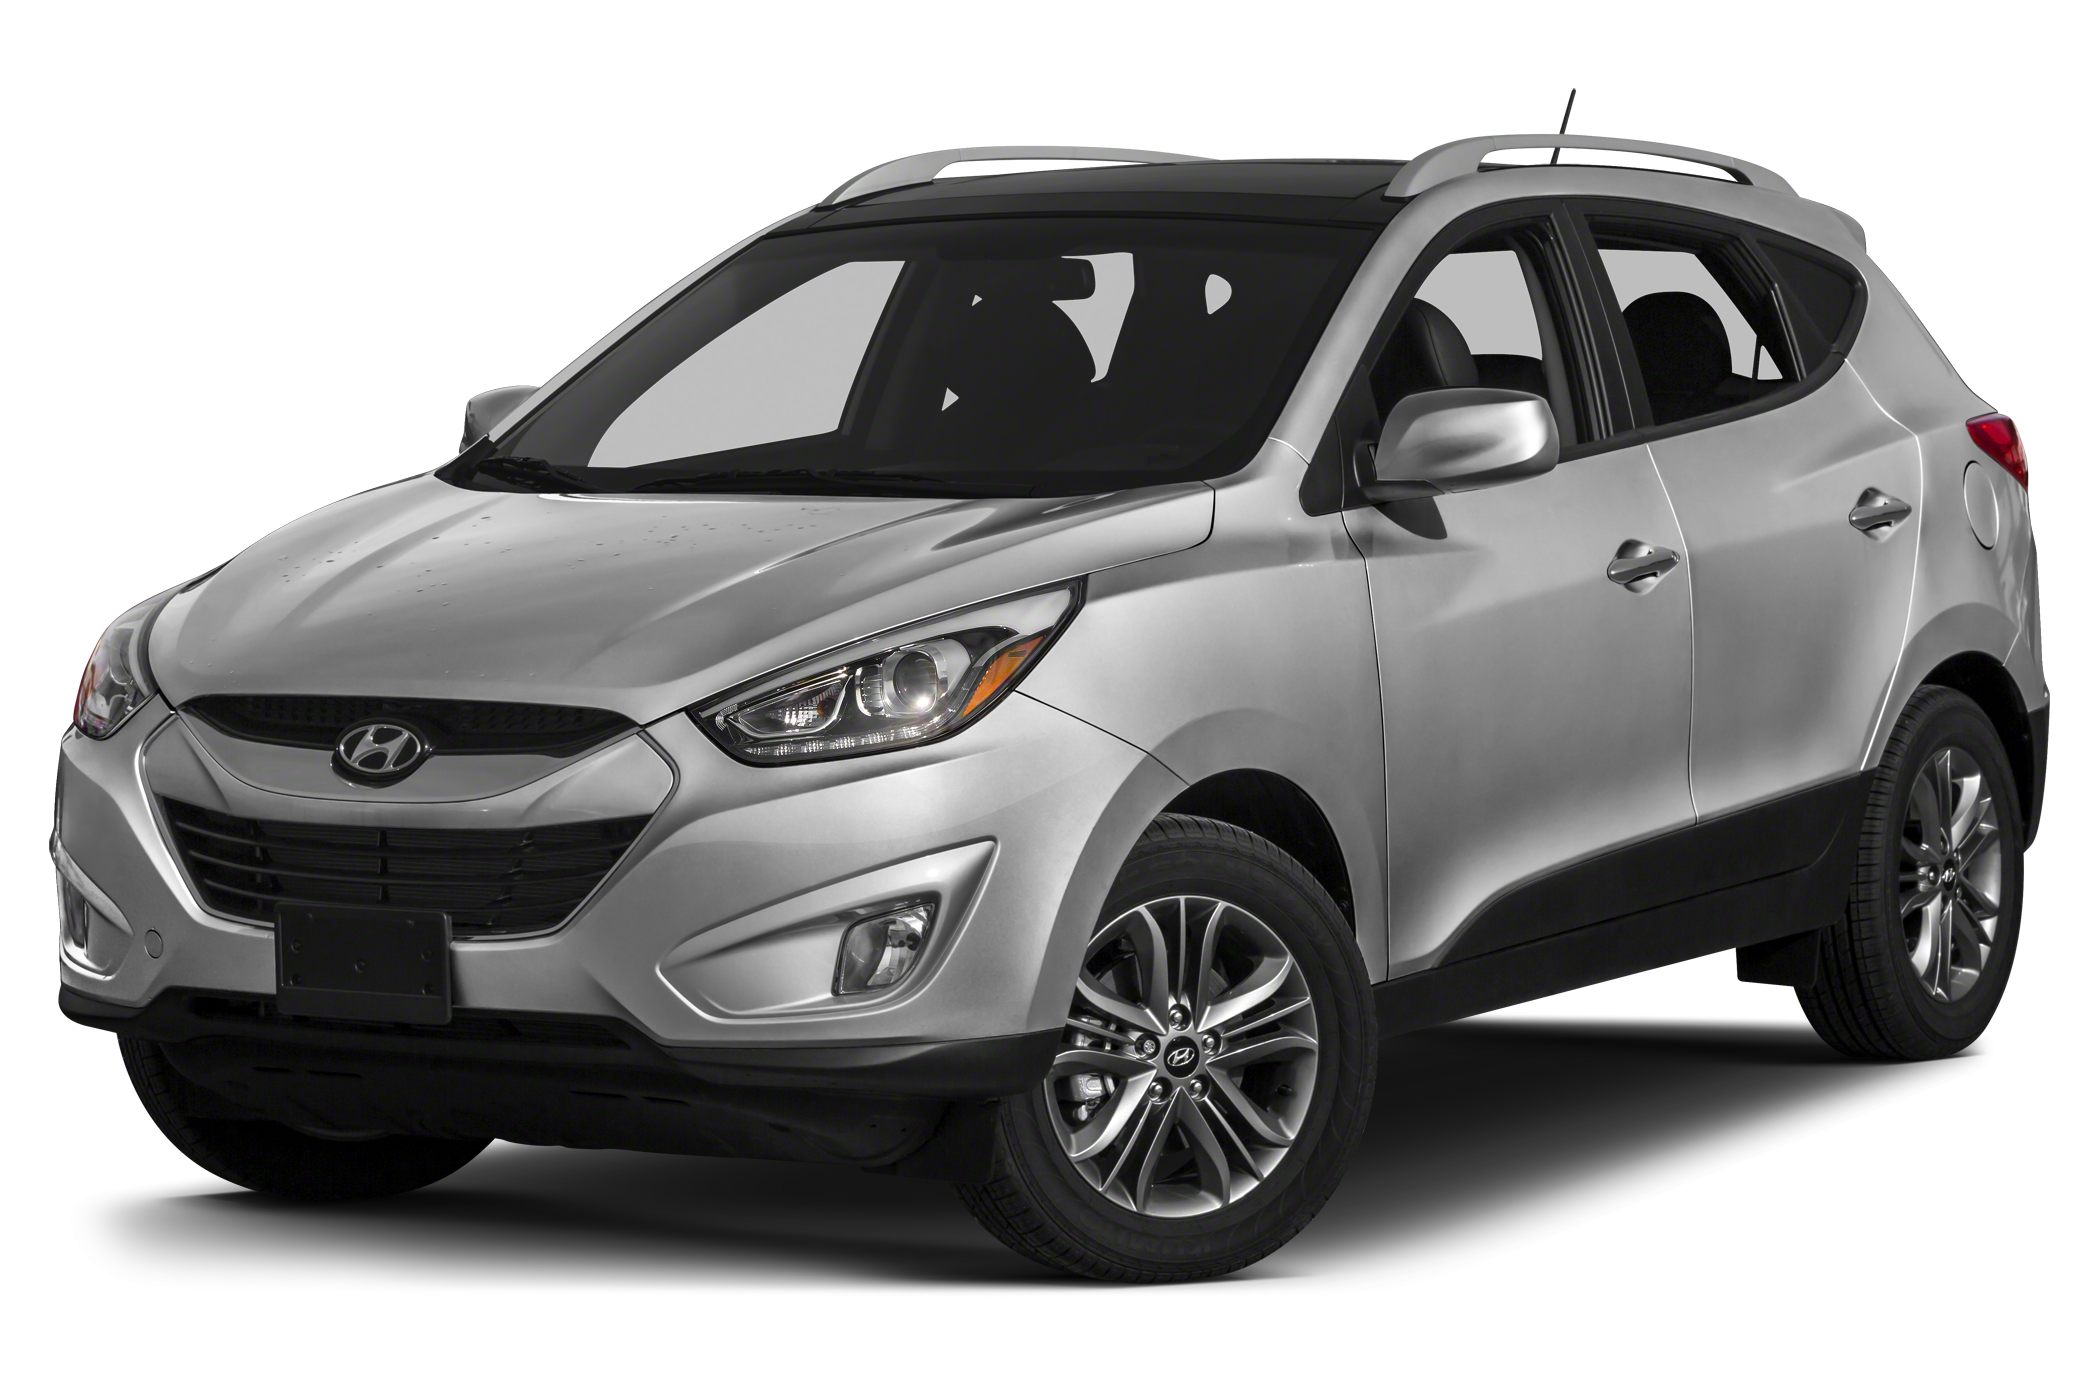 2015 Hyundai Tucson GLS SUV for sale in Everett for $21,159 with 2 miles